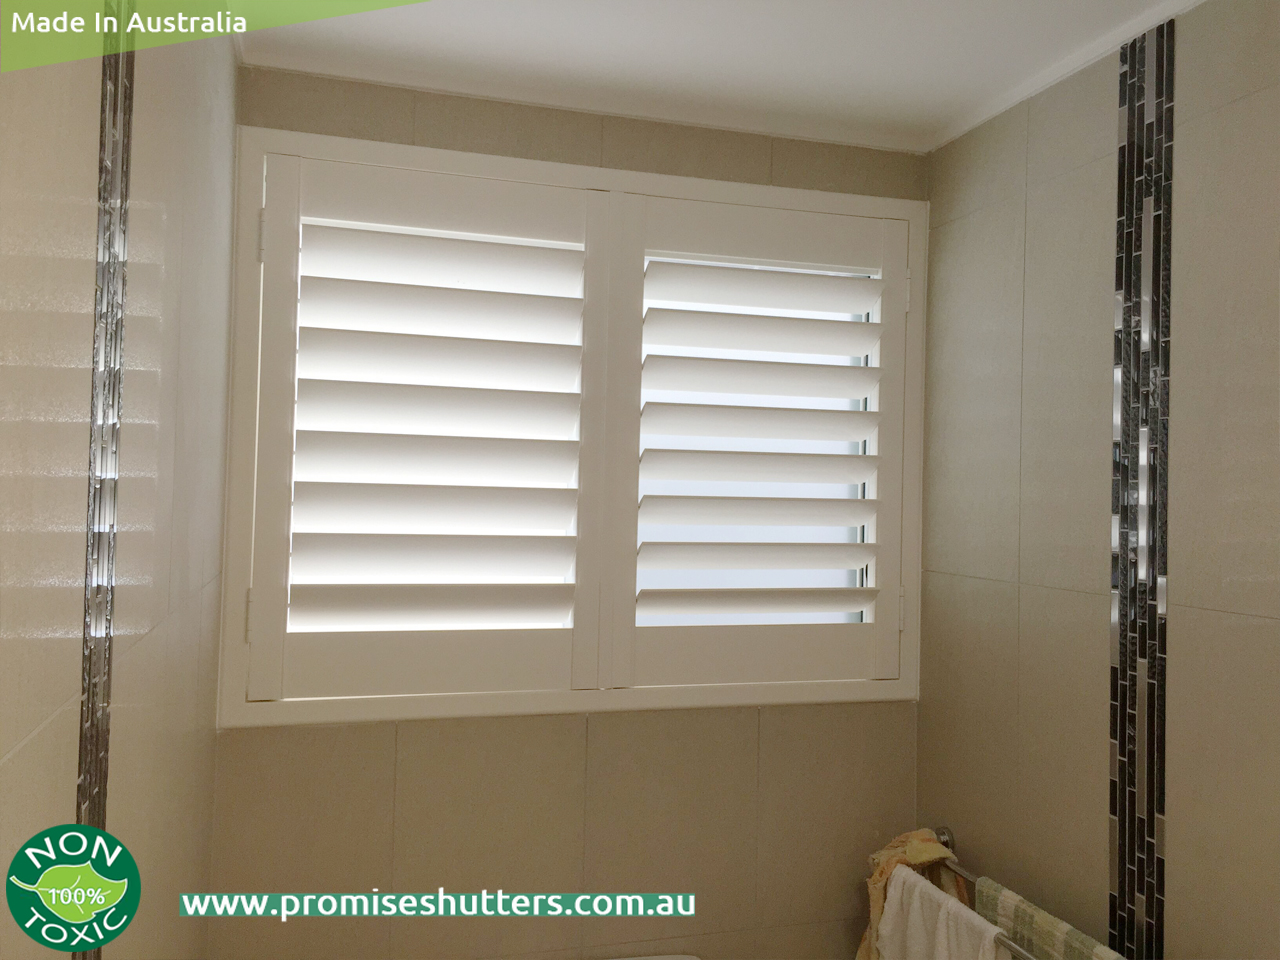 Window Shutters Installed With Z Frame And L Frame